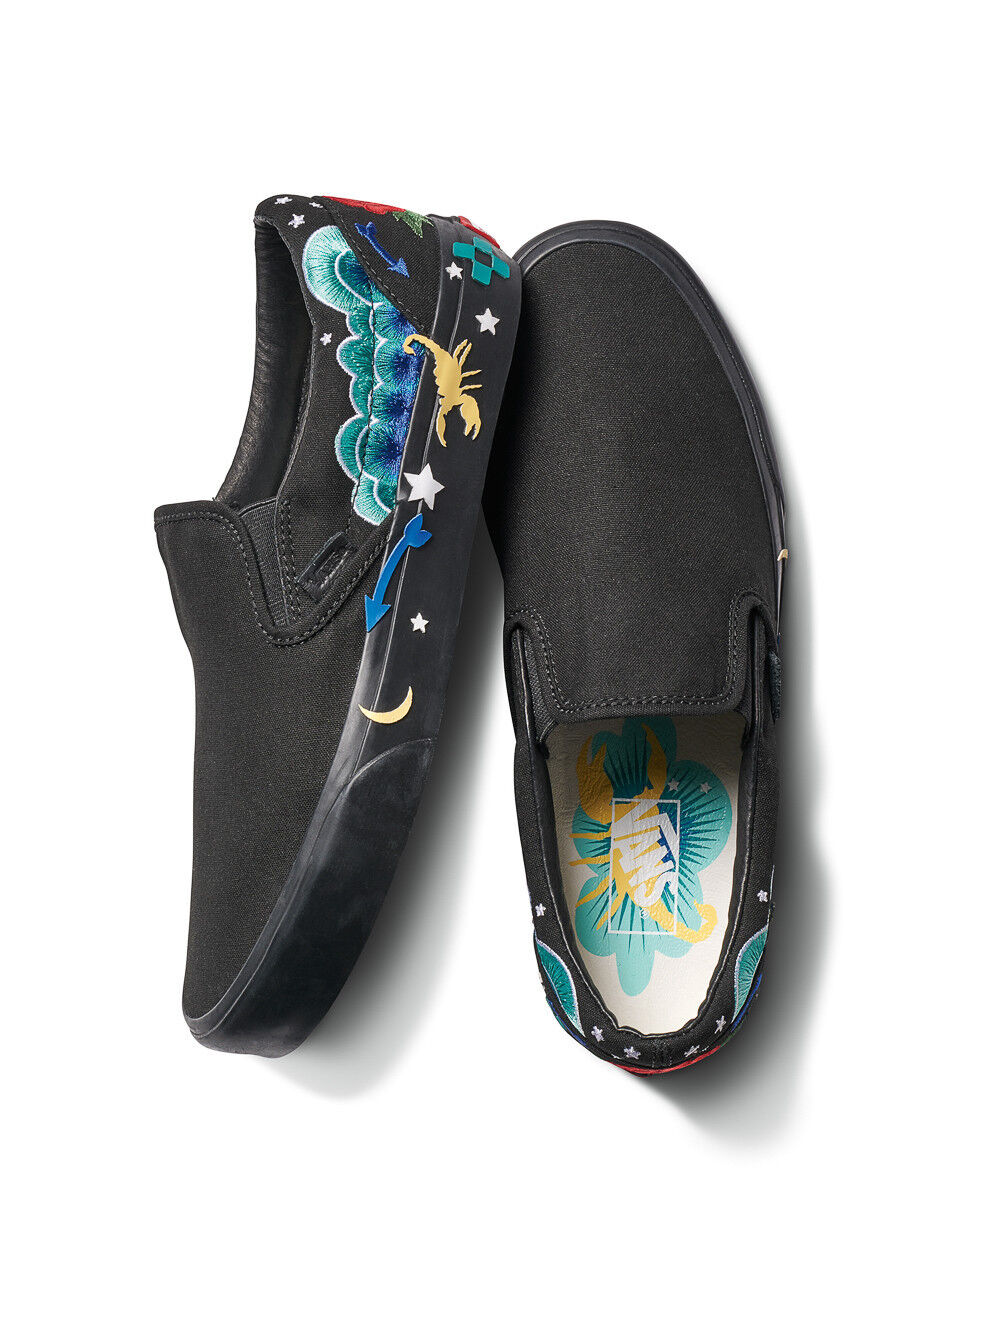 [FREE WORLDWIDE SHIPPING] VANS Slip-On Desert Embellish VN0A38F7T2A M8.0 W9.5